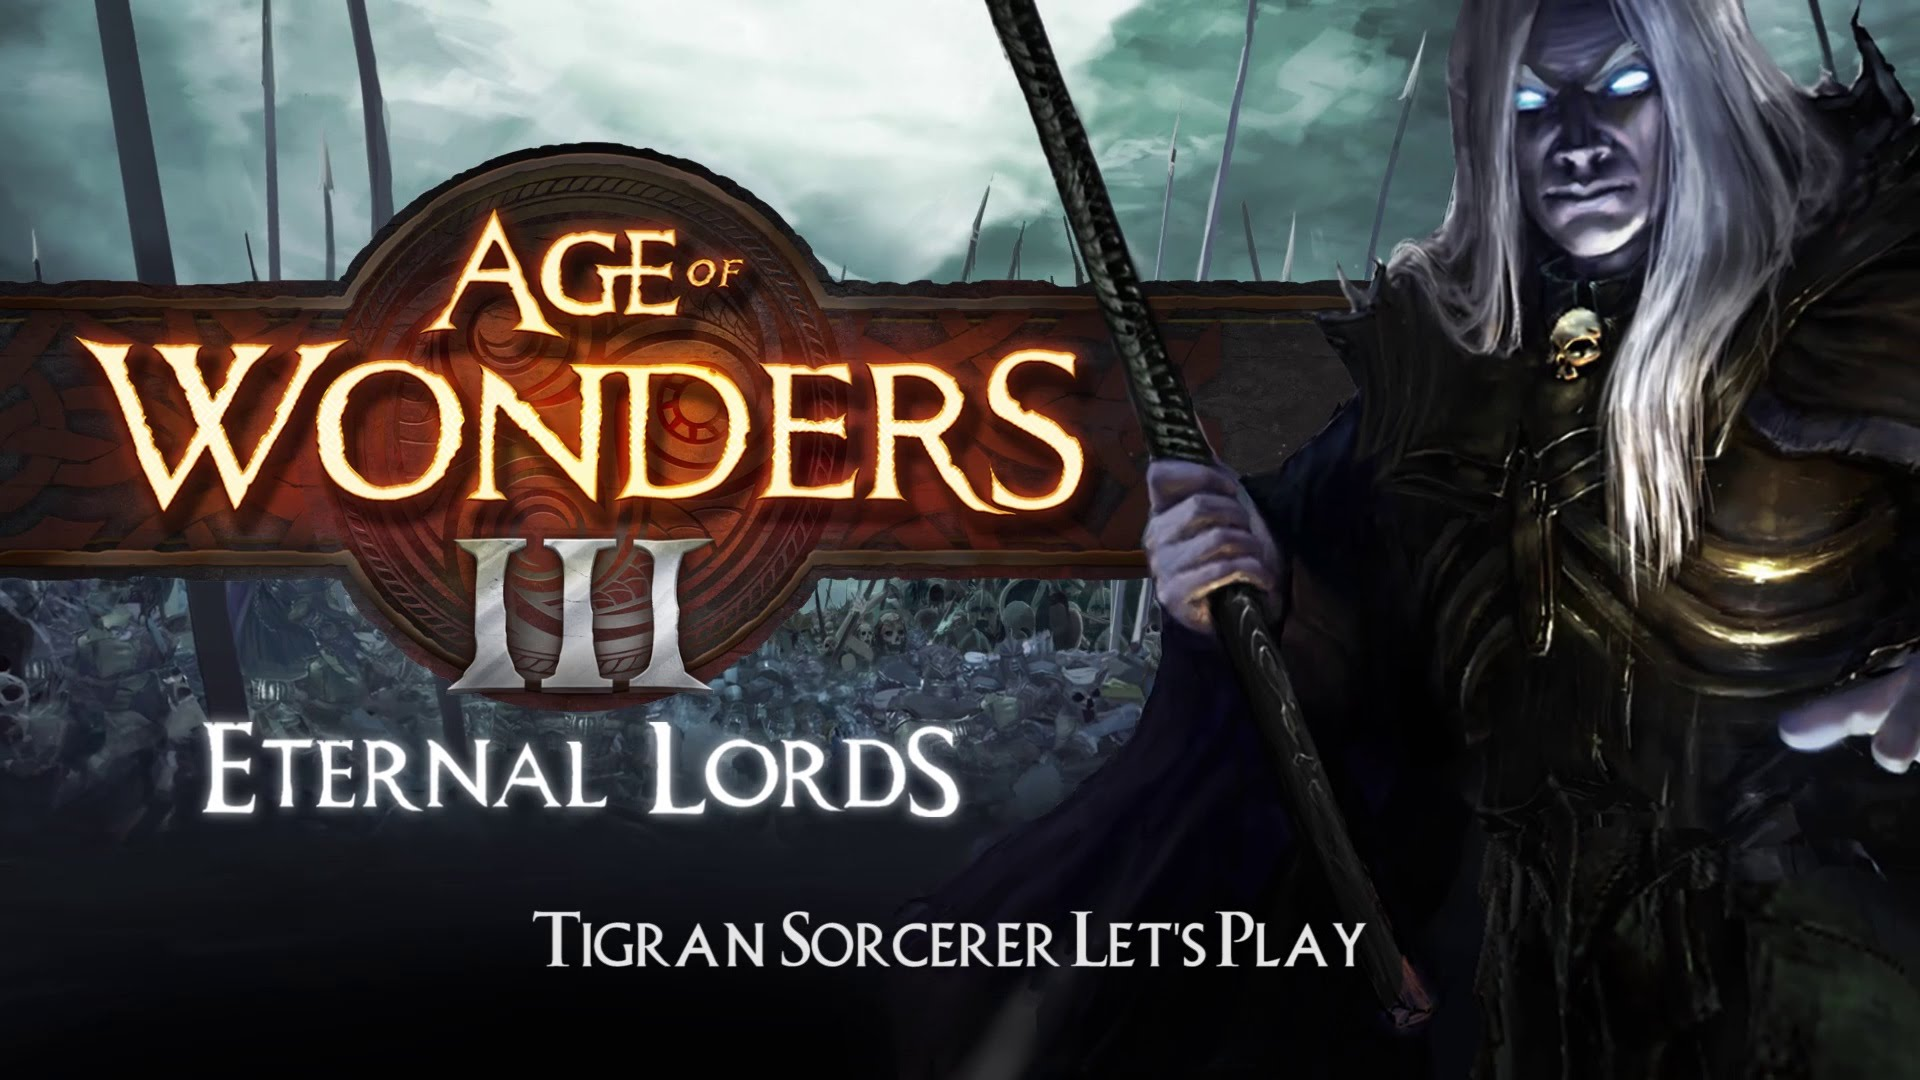 Age of Wonders III: Eternal Lords – Tigran Unifier Victory Let's Play Video Thumbnail